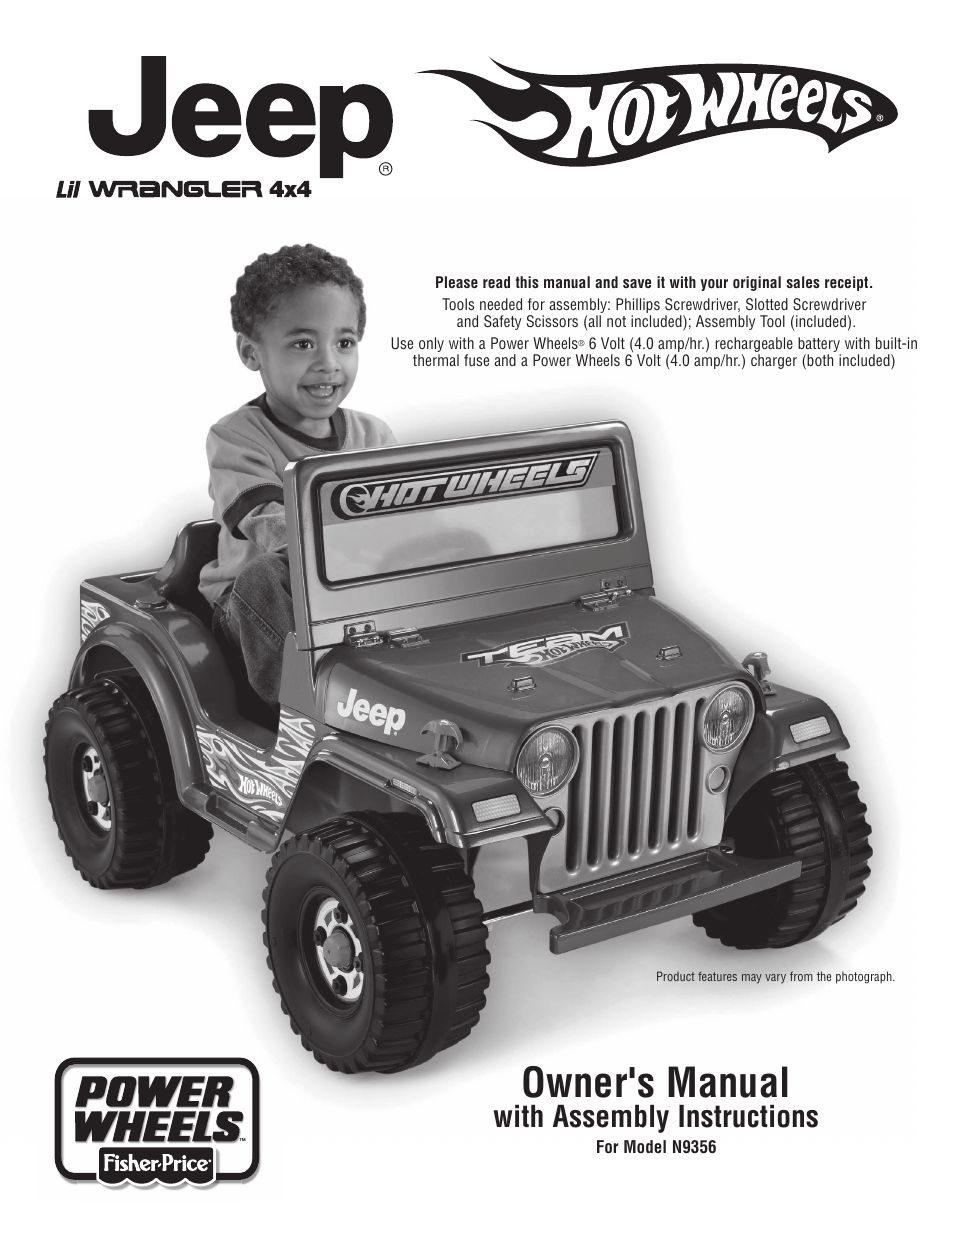 jeep hot wheels n9356 user manual 20 pages rh manualsdir com power wheels frozen jeep wrangler manual power wheels tough talking jeep wrangler manual